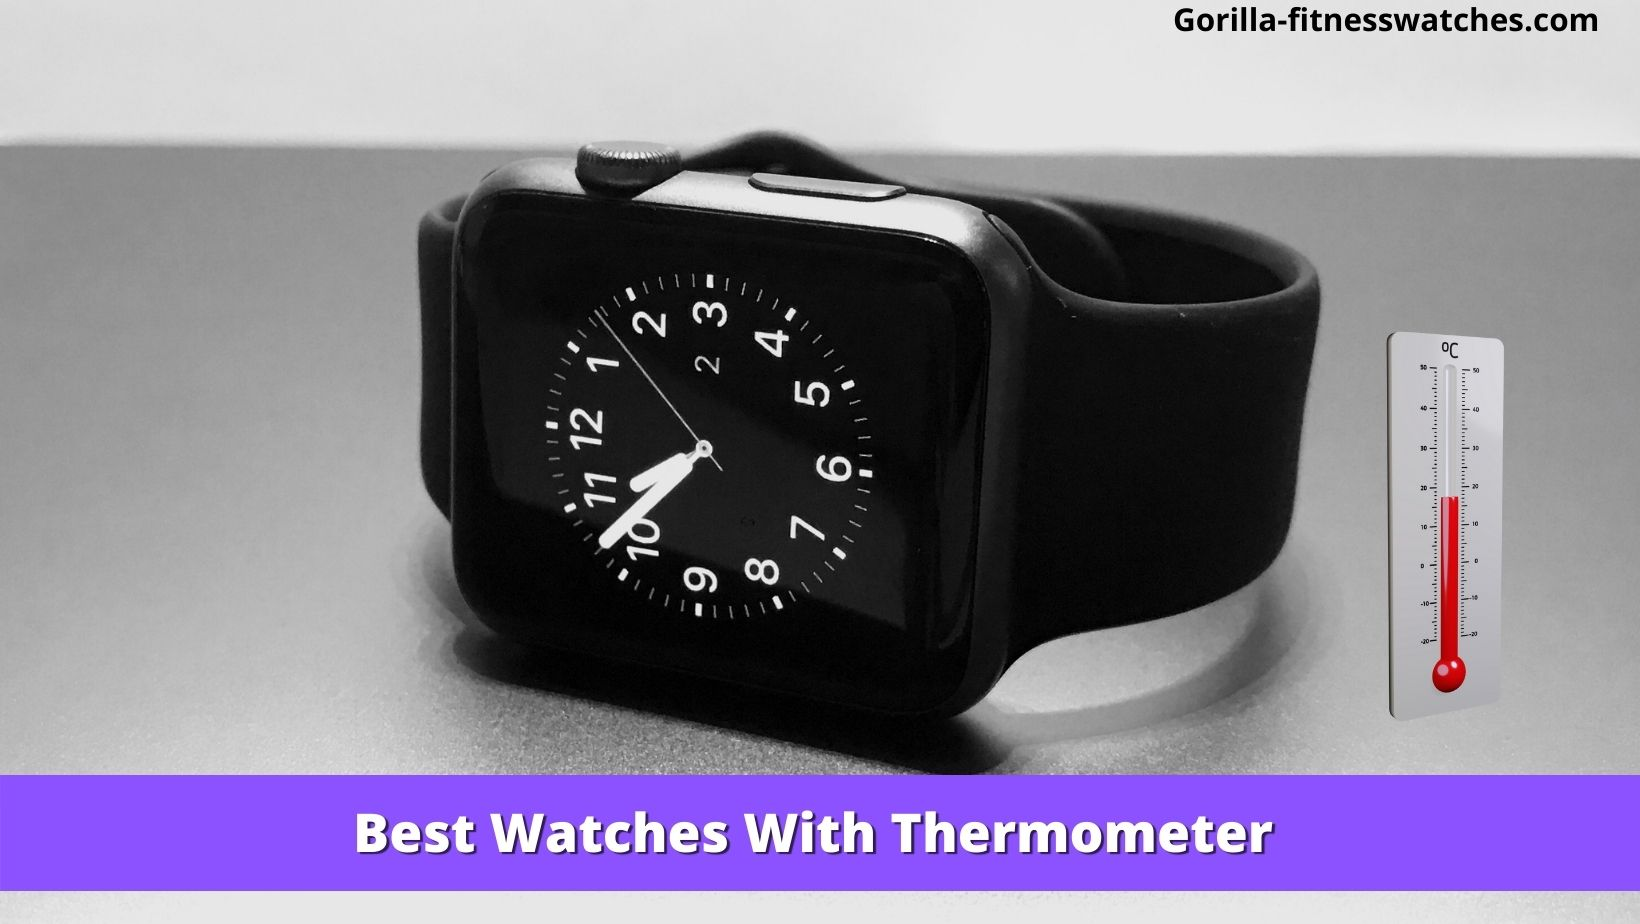 Best Watches With Thermometer